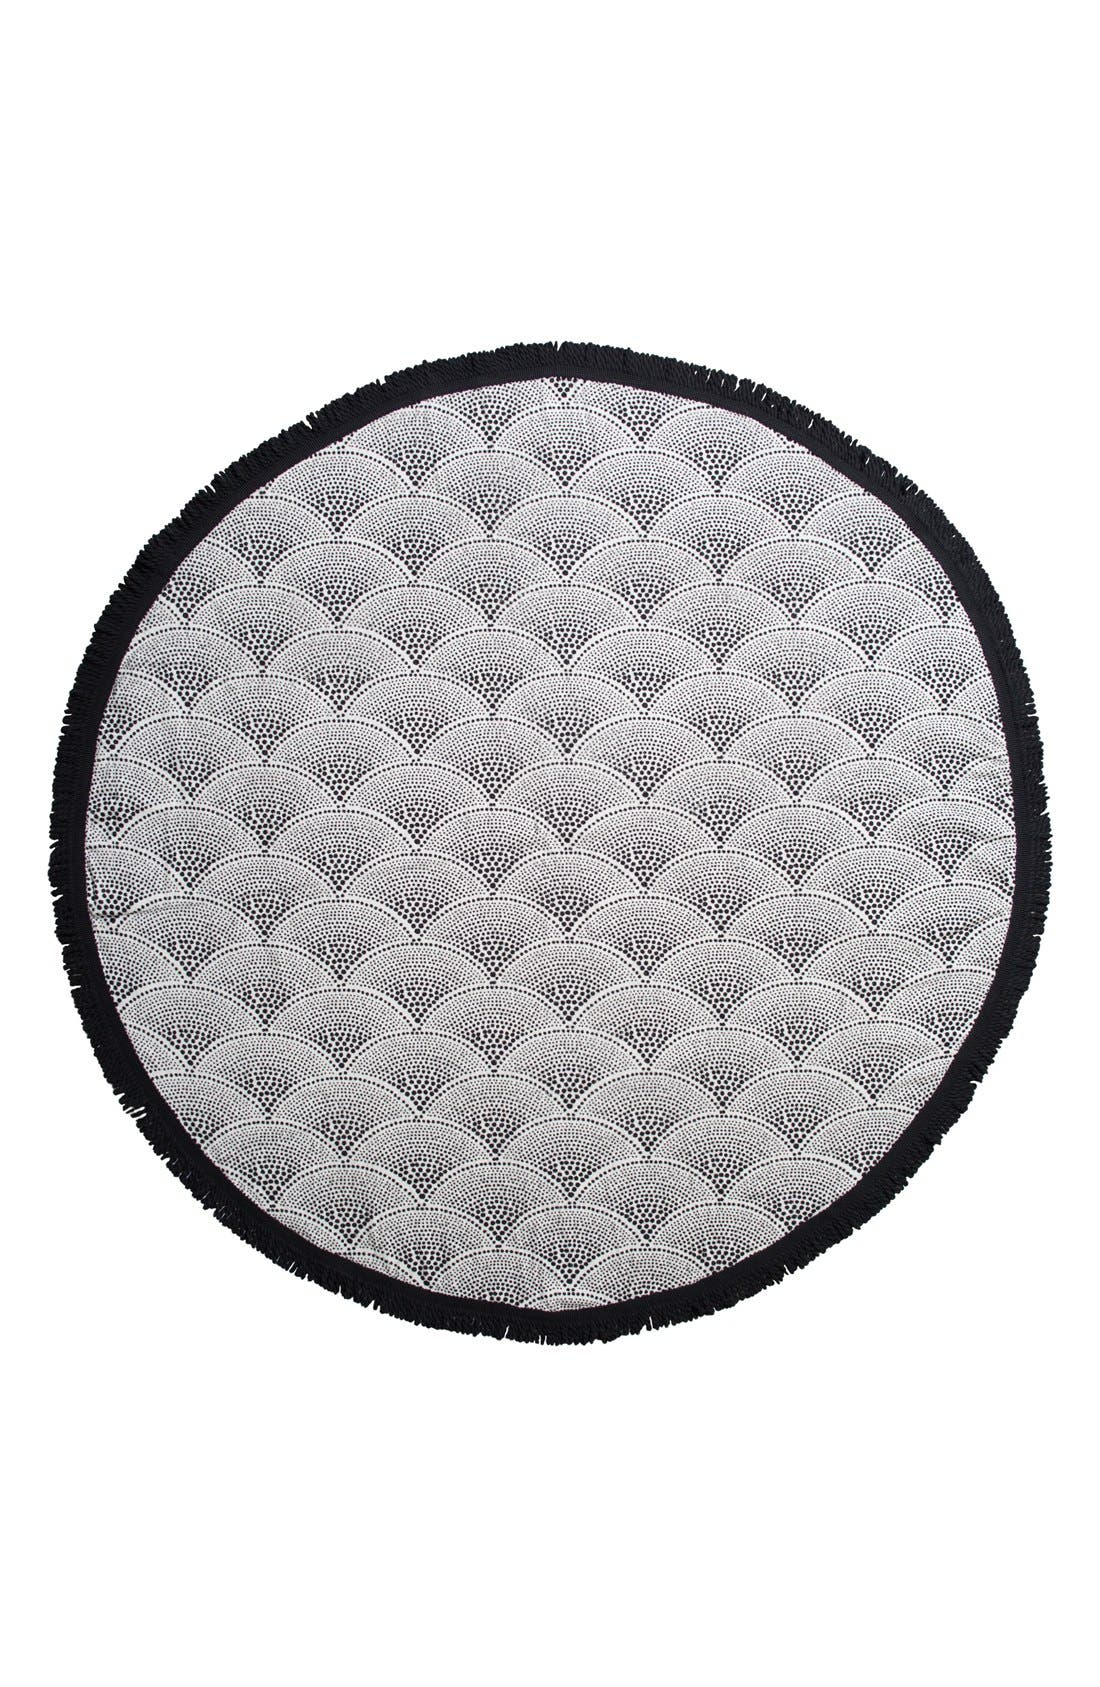 'Amaroo' Round Beach Towel,                             Main thumbnail 1, color,                             001